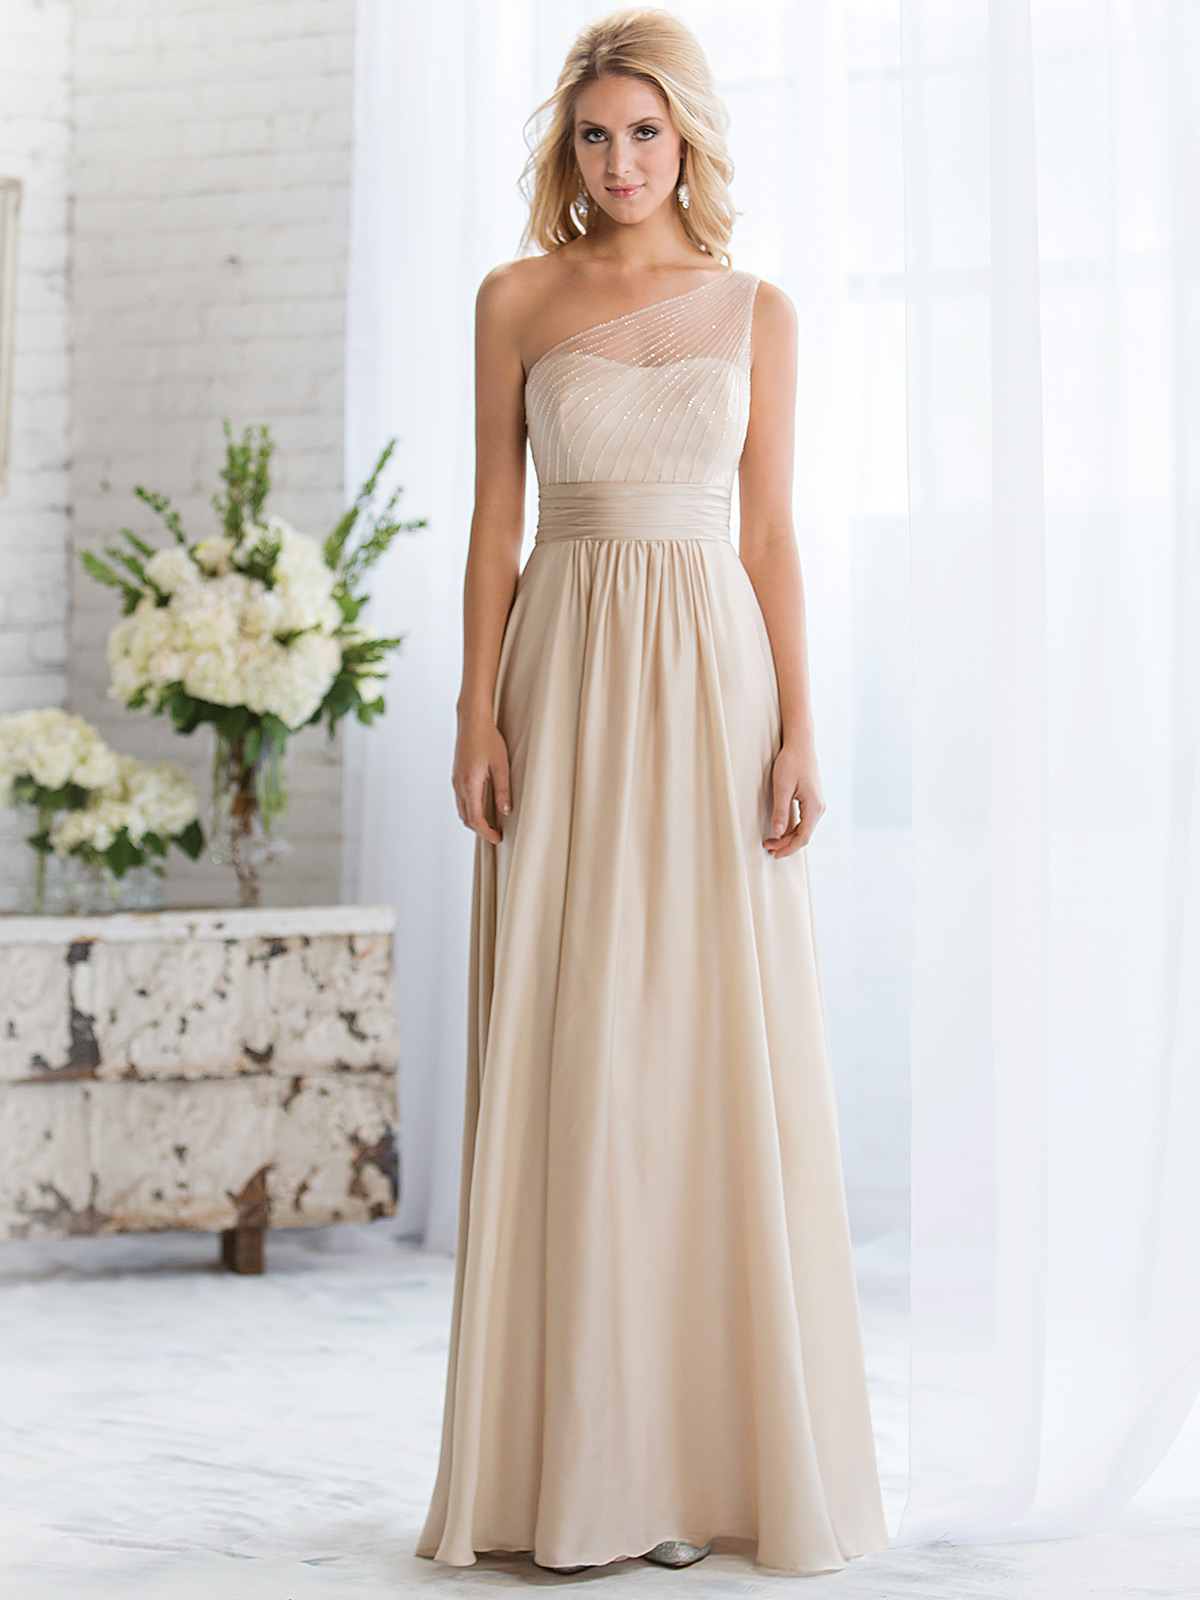 Belsoie bridesmaid dress l164056 dimitradesigns one shoulder beaded belsoie bridesmaids dress by jasmine l164056 ombrellifo Image collections